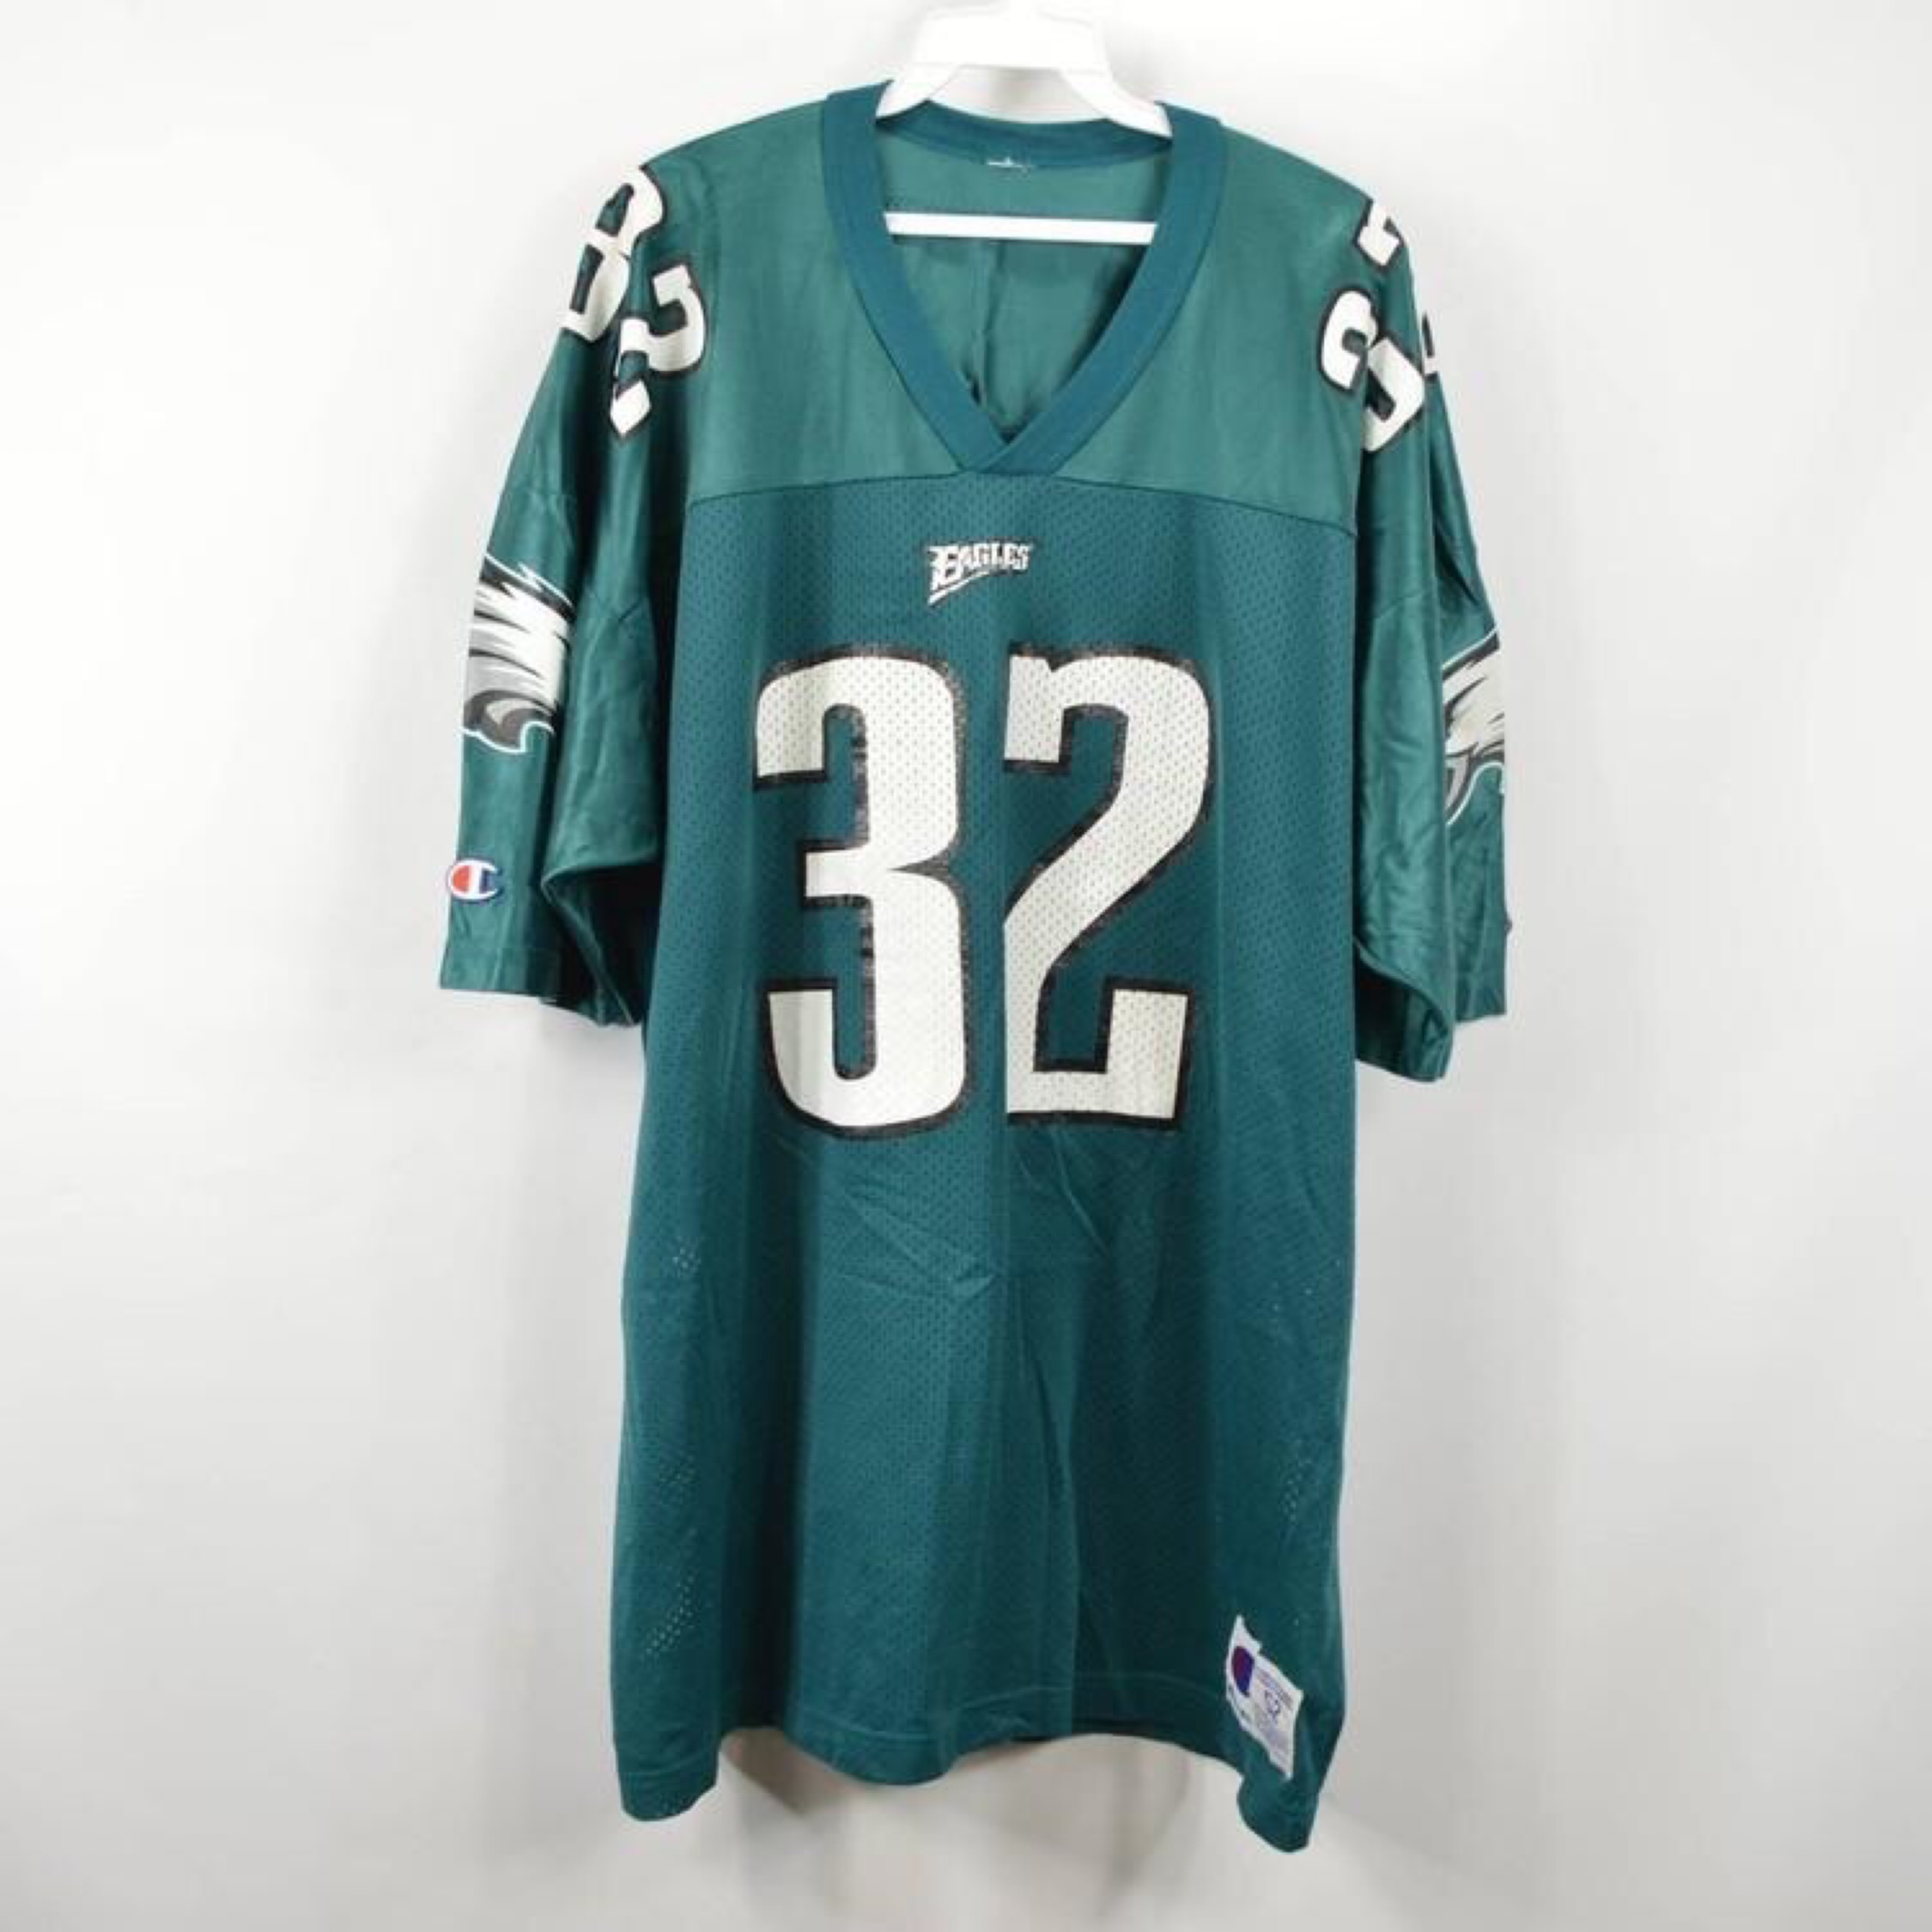 79a39220 Vintage Champion Eagles Jersey